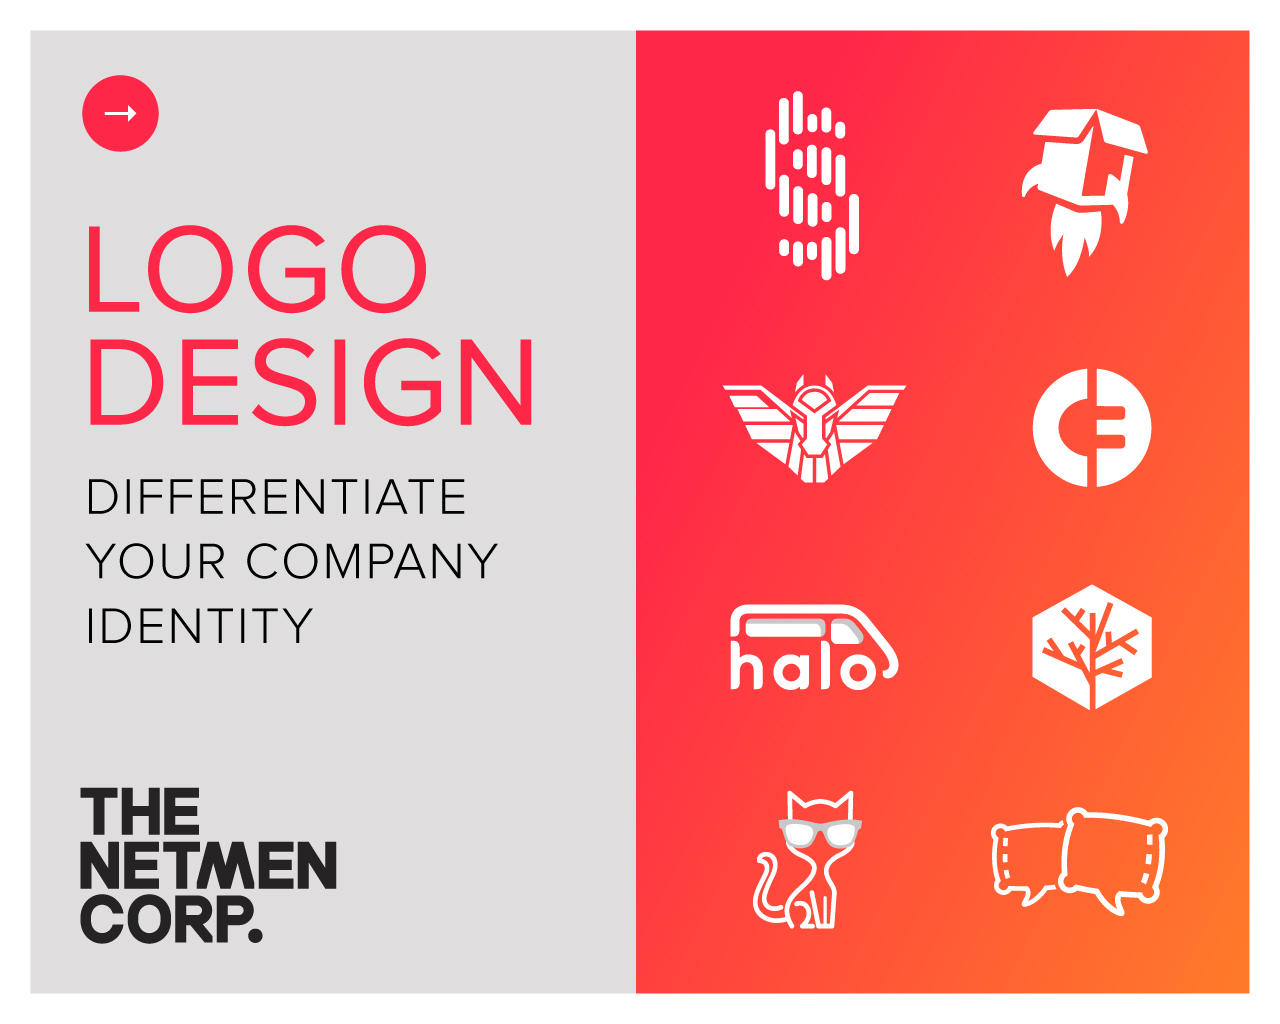 Custom & Original Logo Design by thenetmen - 101619